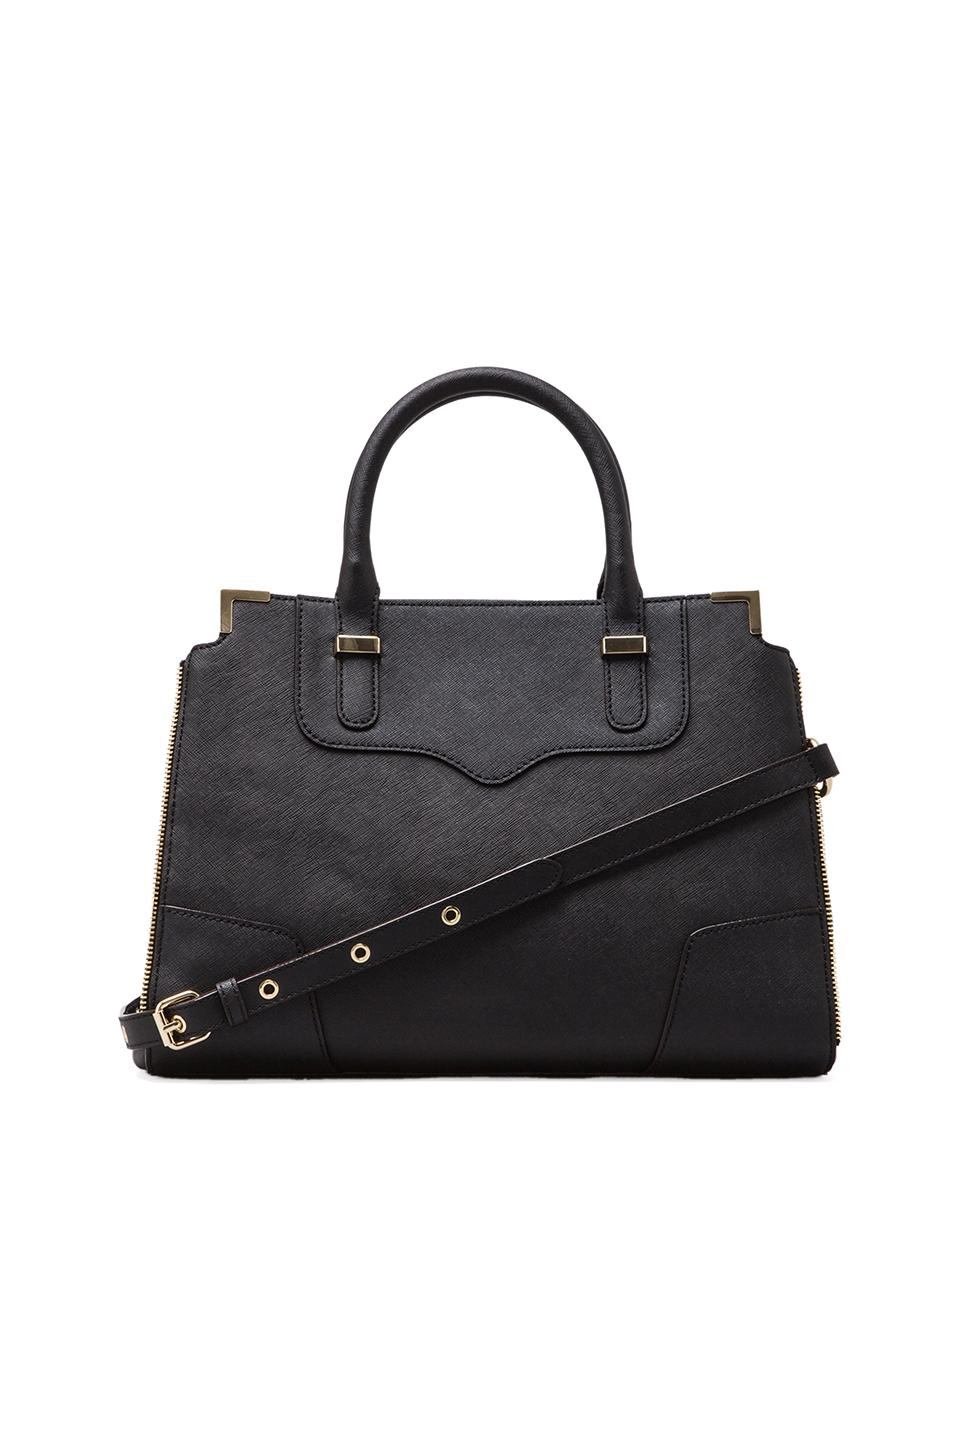 Rebecca Minkoff Amorous Satchel in Black